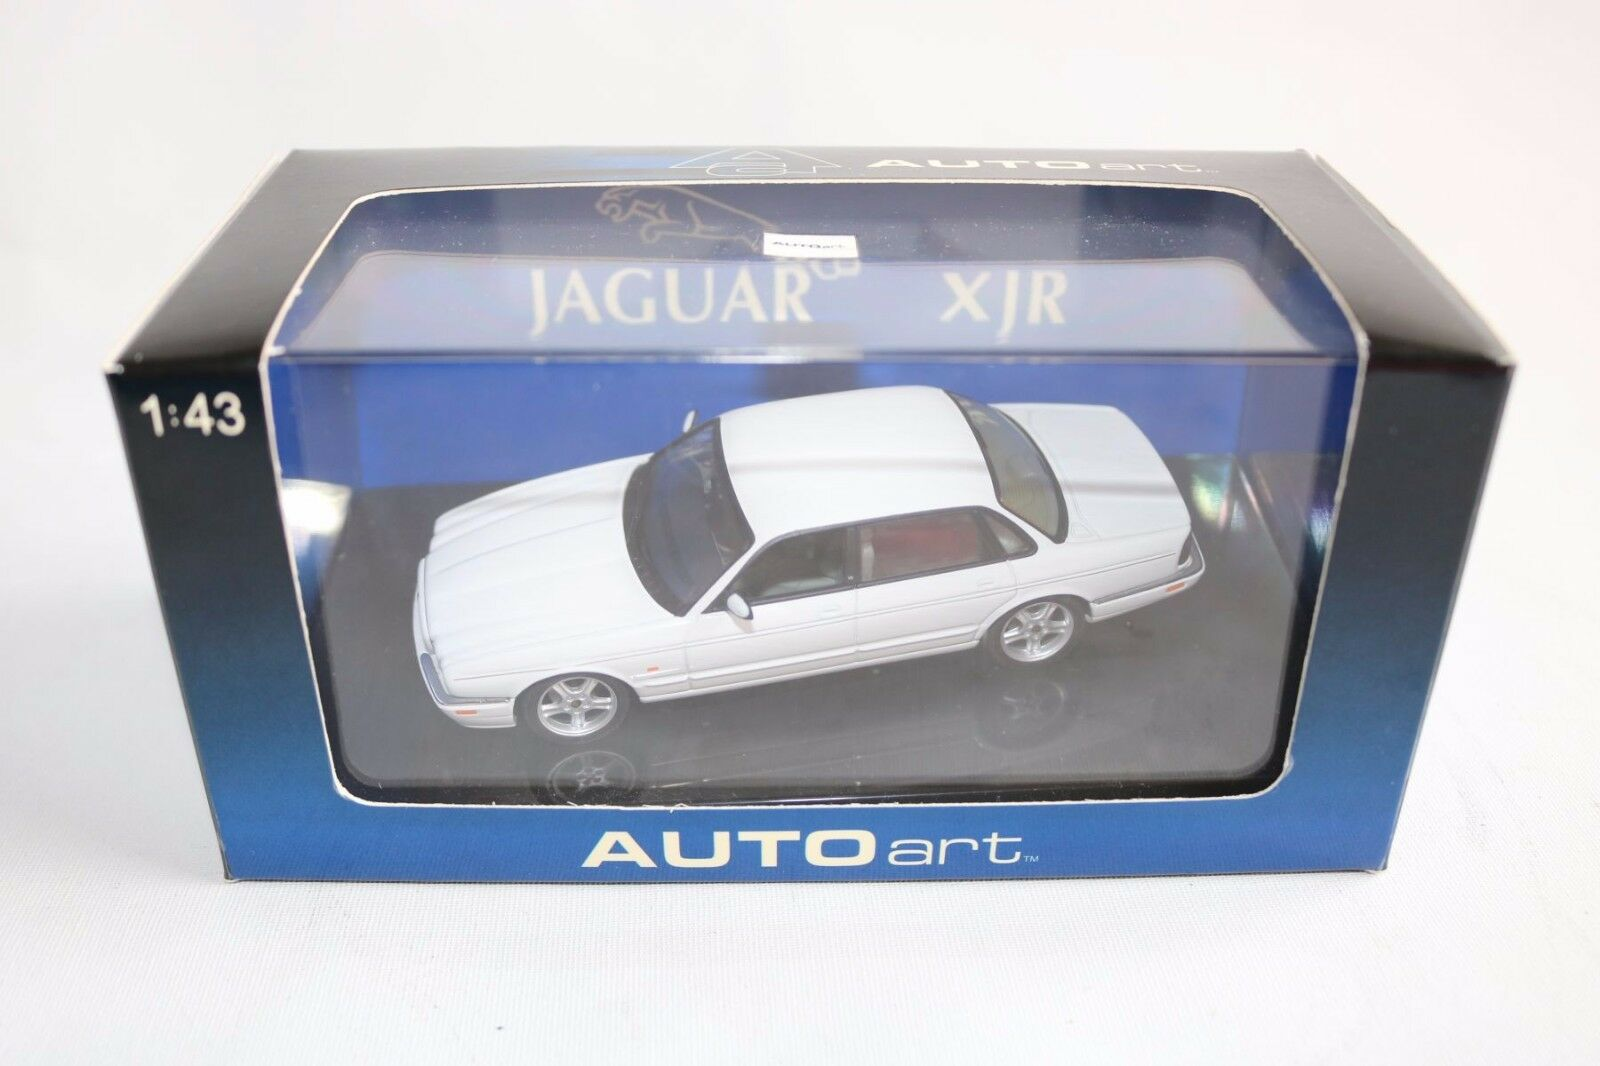 Auto art Autoart 53602 Jaguar XJR Blanco perfect mint in box  OVP Scarce